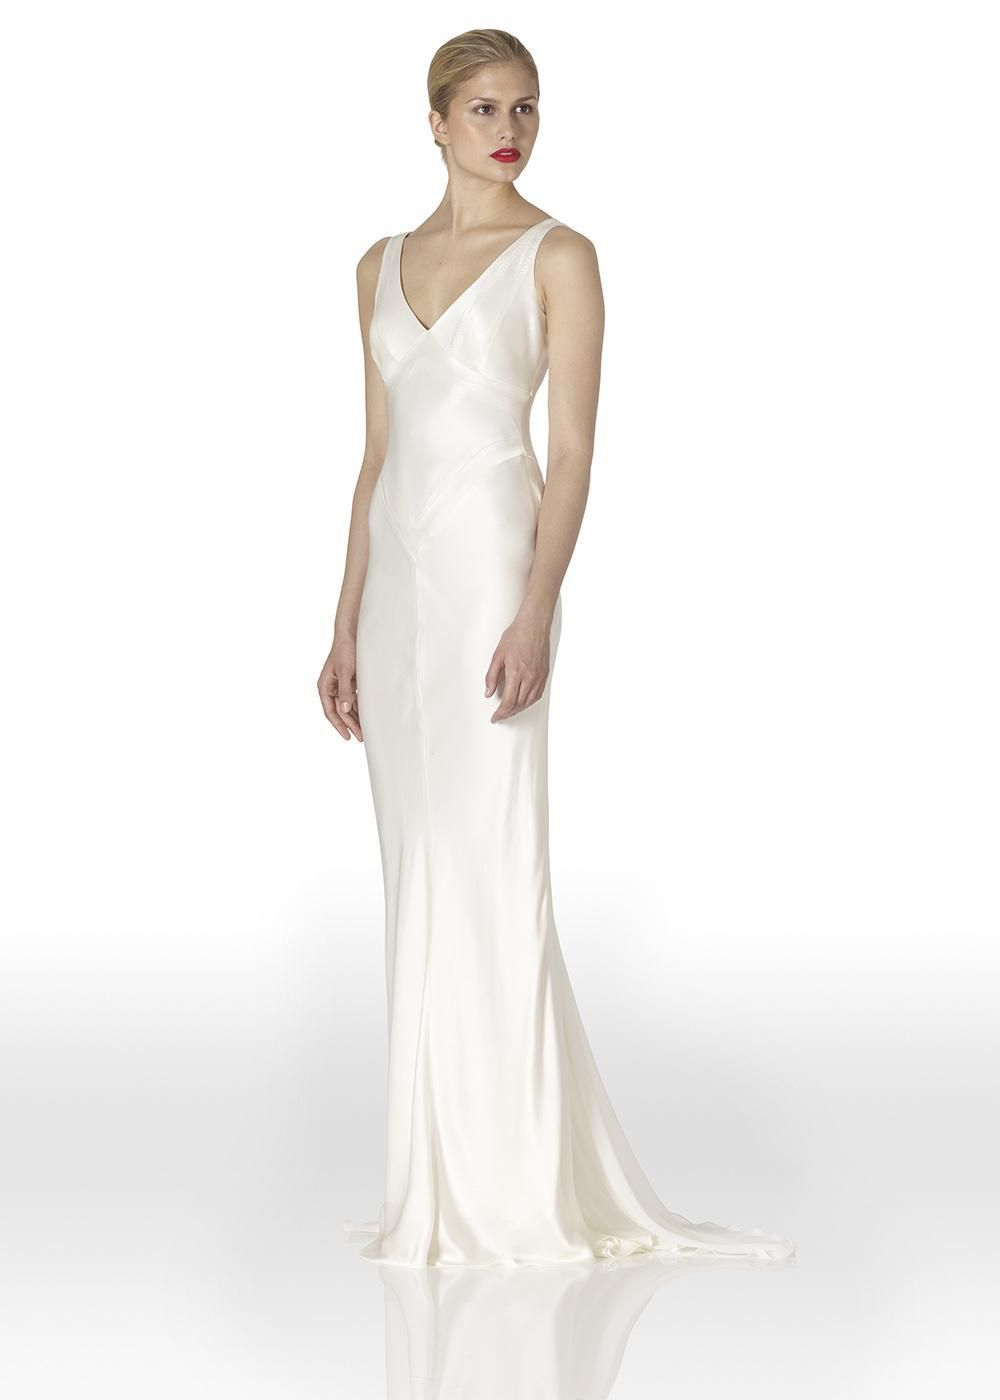 Bias cut wedding dress ready to buy bridal boutique amanda bias cut wedding dress ready to buy bridal boutique amanda wakeley ombrellifo Image collections